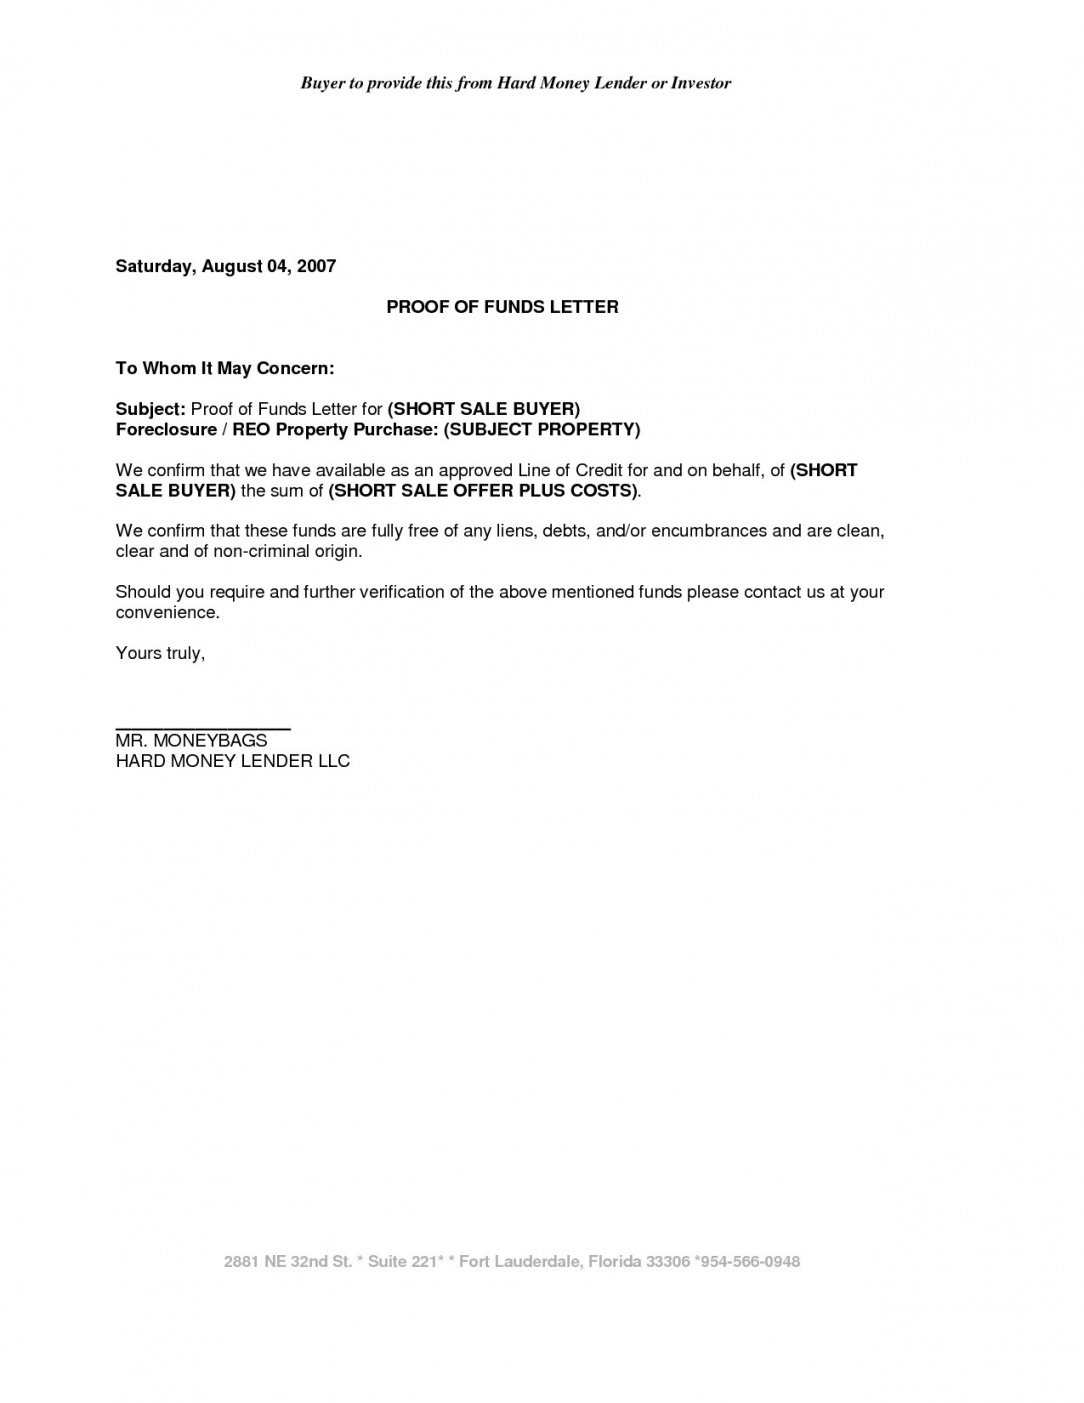 editable sample proof of funds letter template examples  letter template proof of delivery letter template pdf